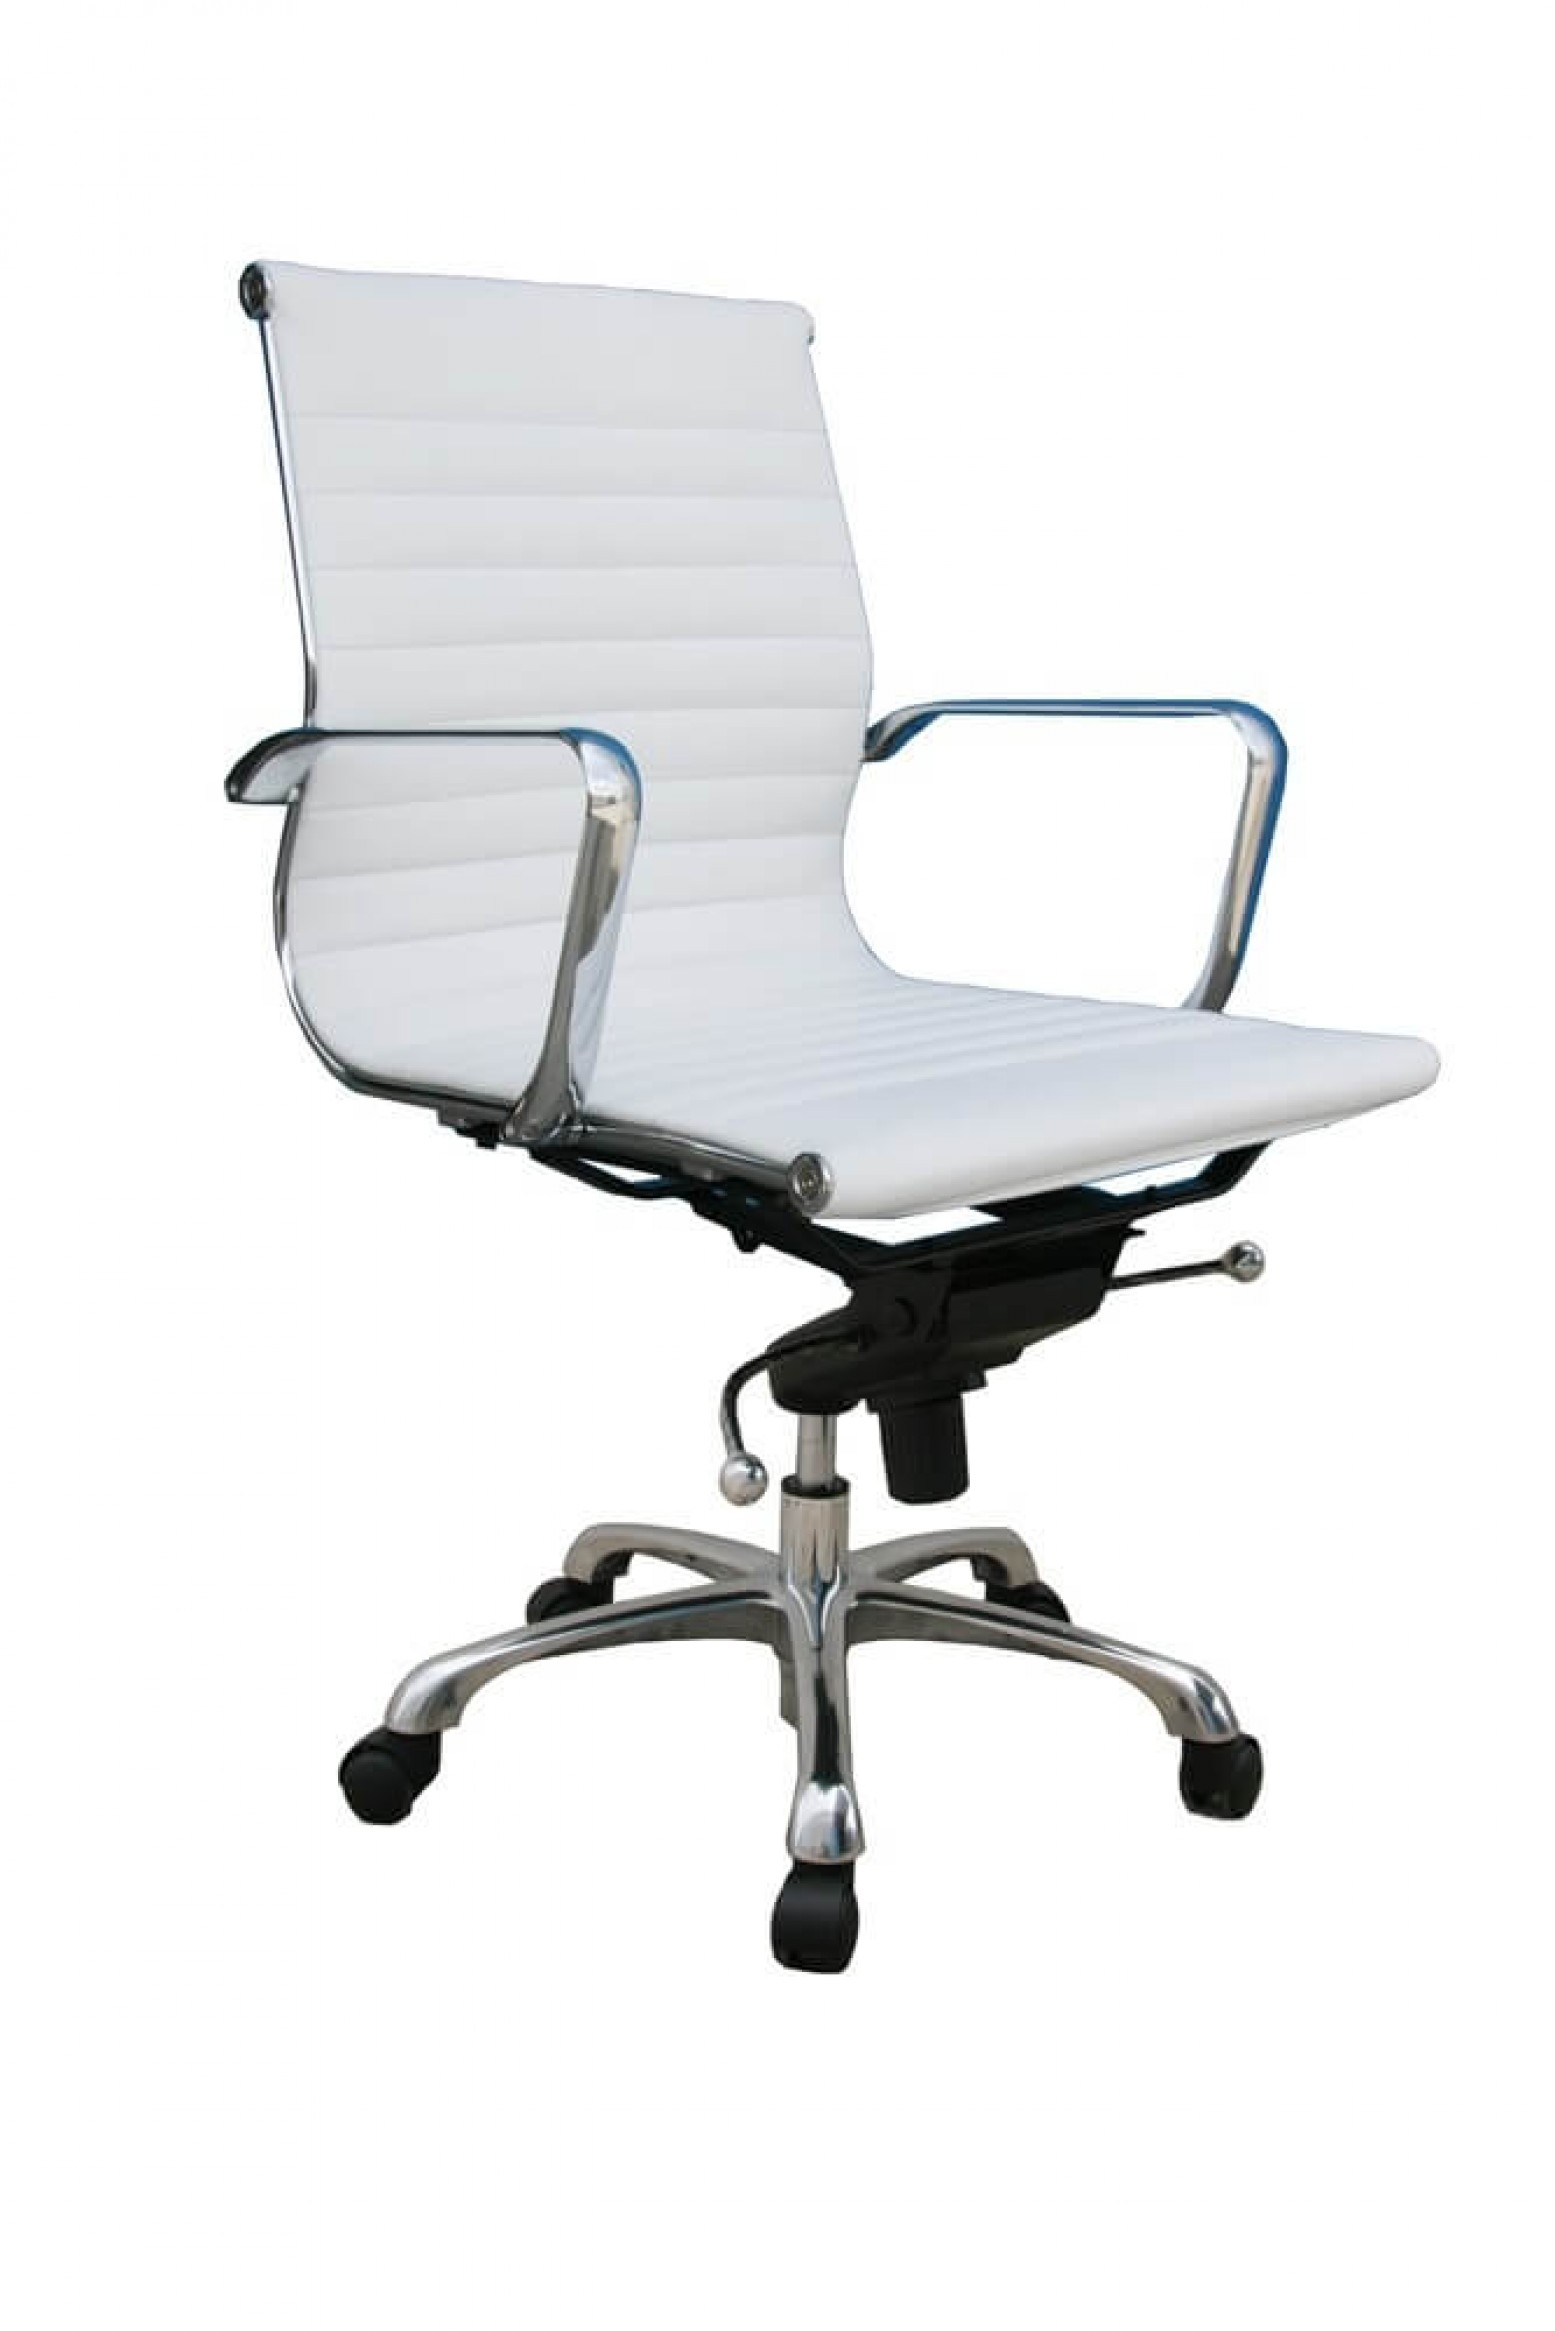 Comfy Office Chairs Comfy Low Back Adjustable Leather Swivel Office Chair